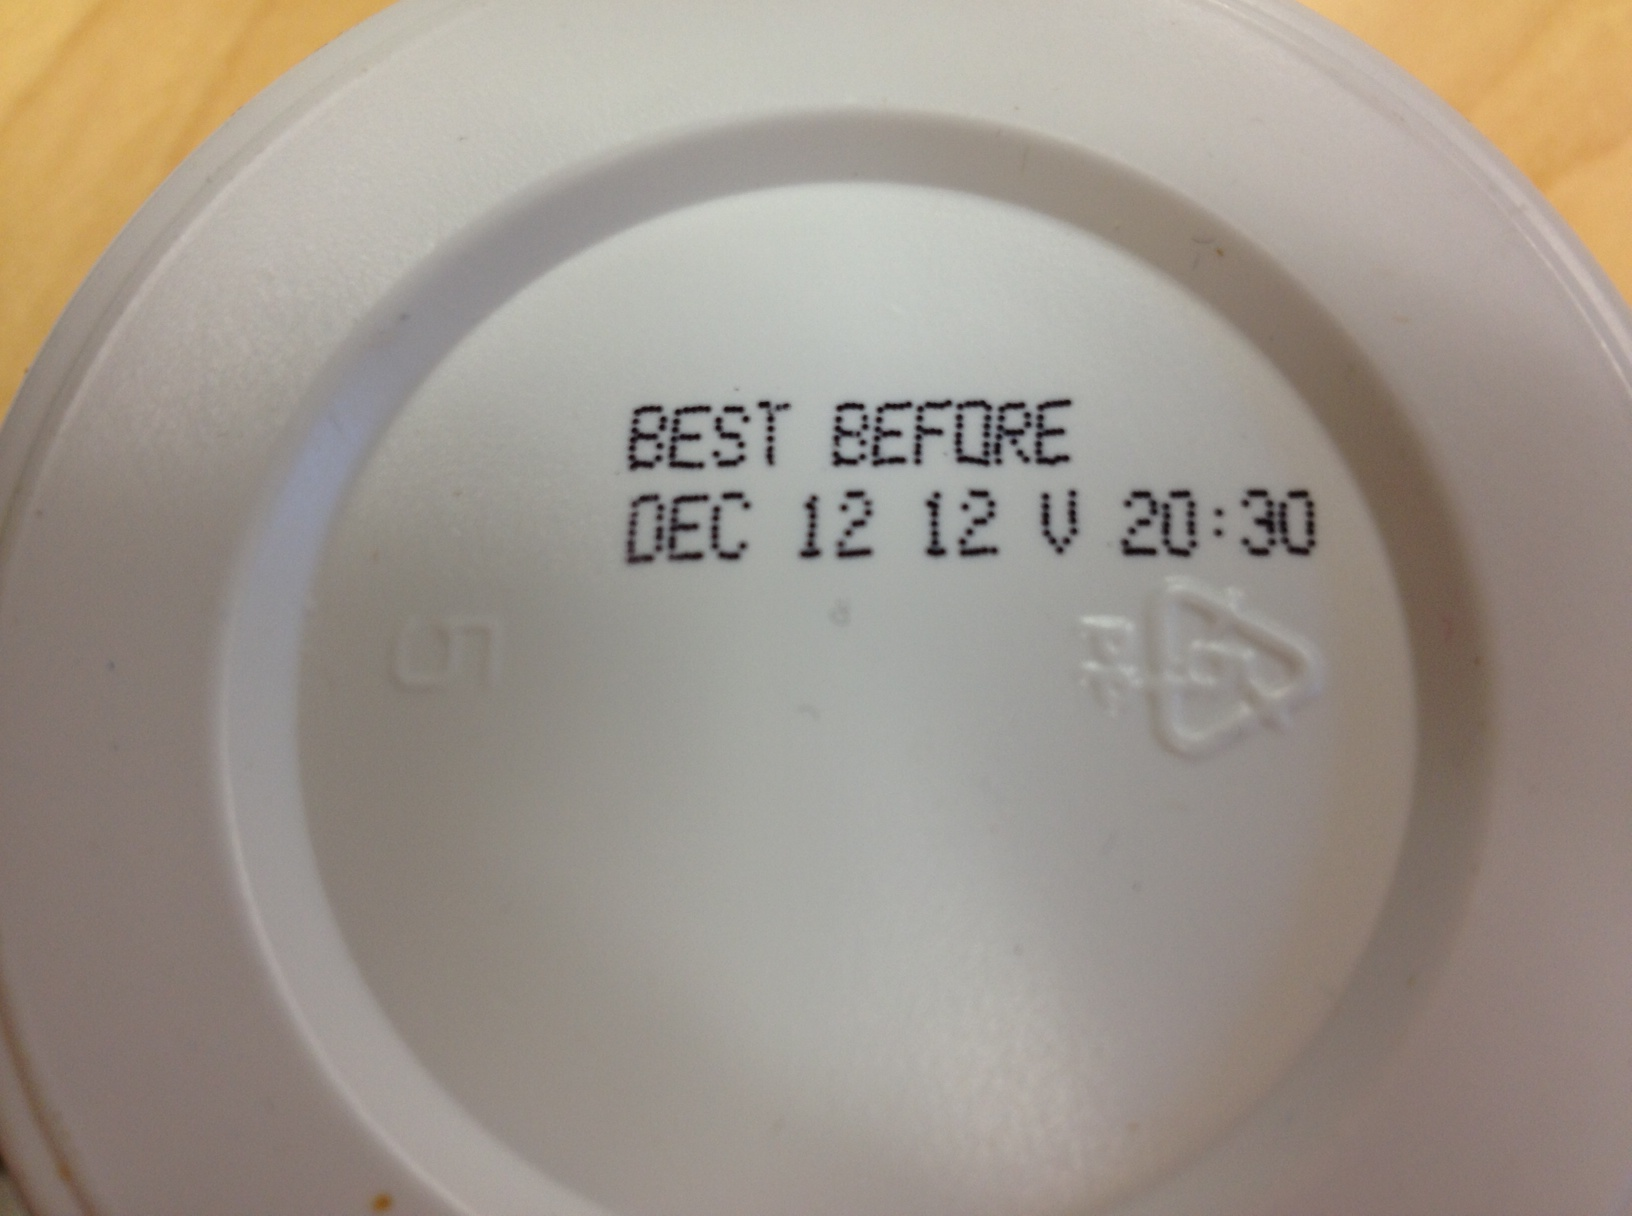 20 things that have an expiration date